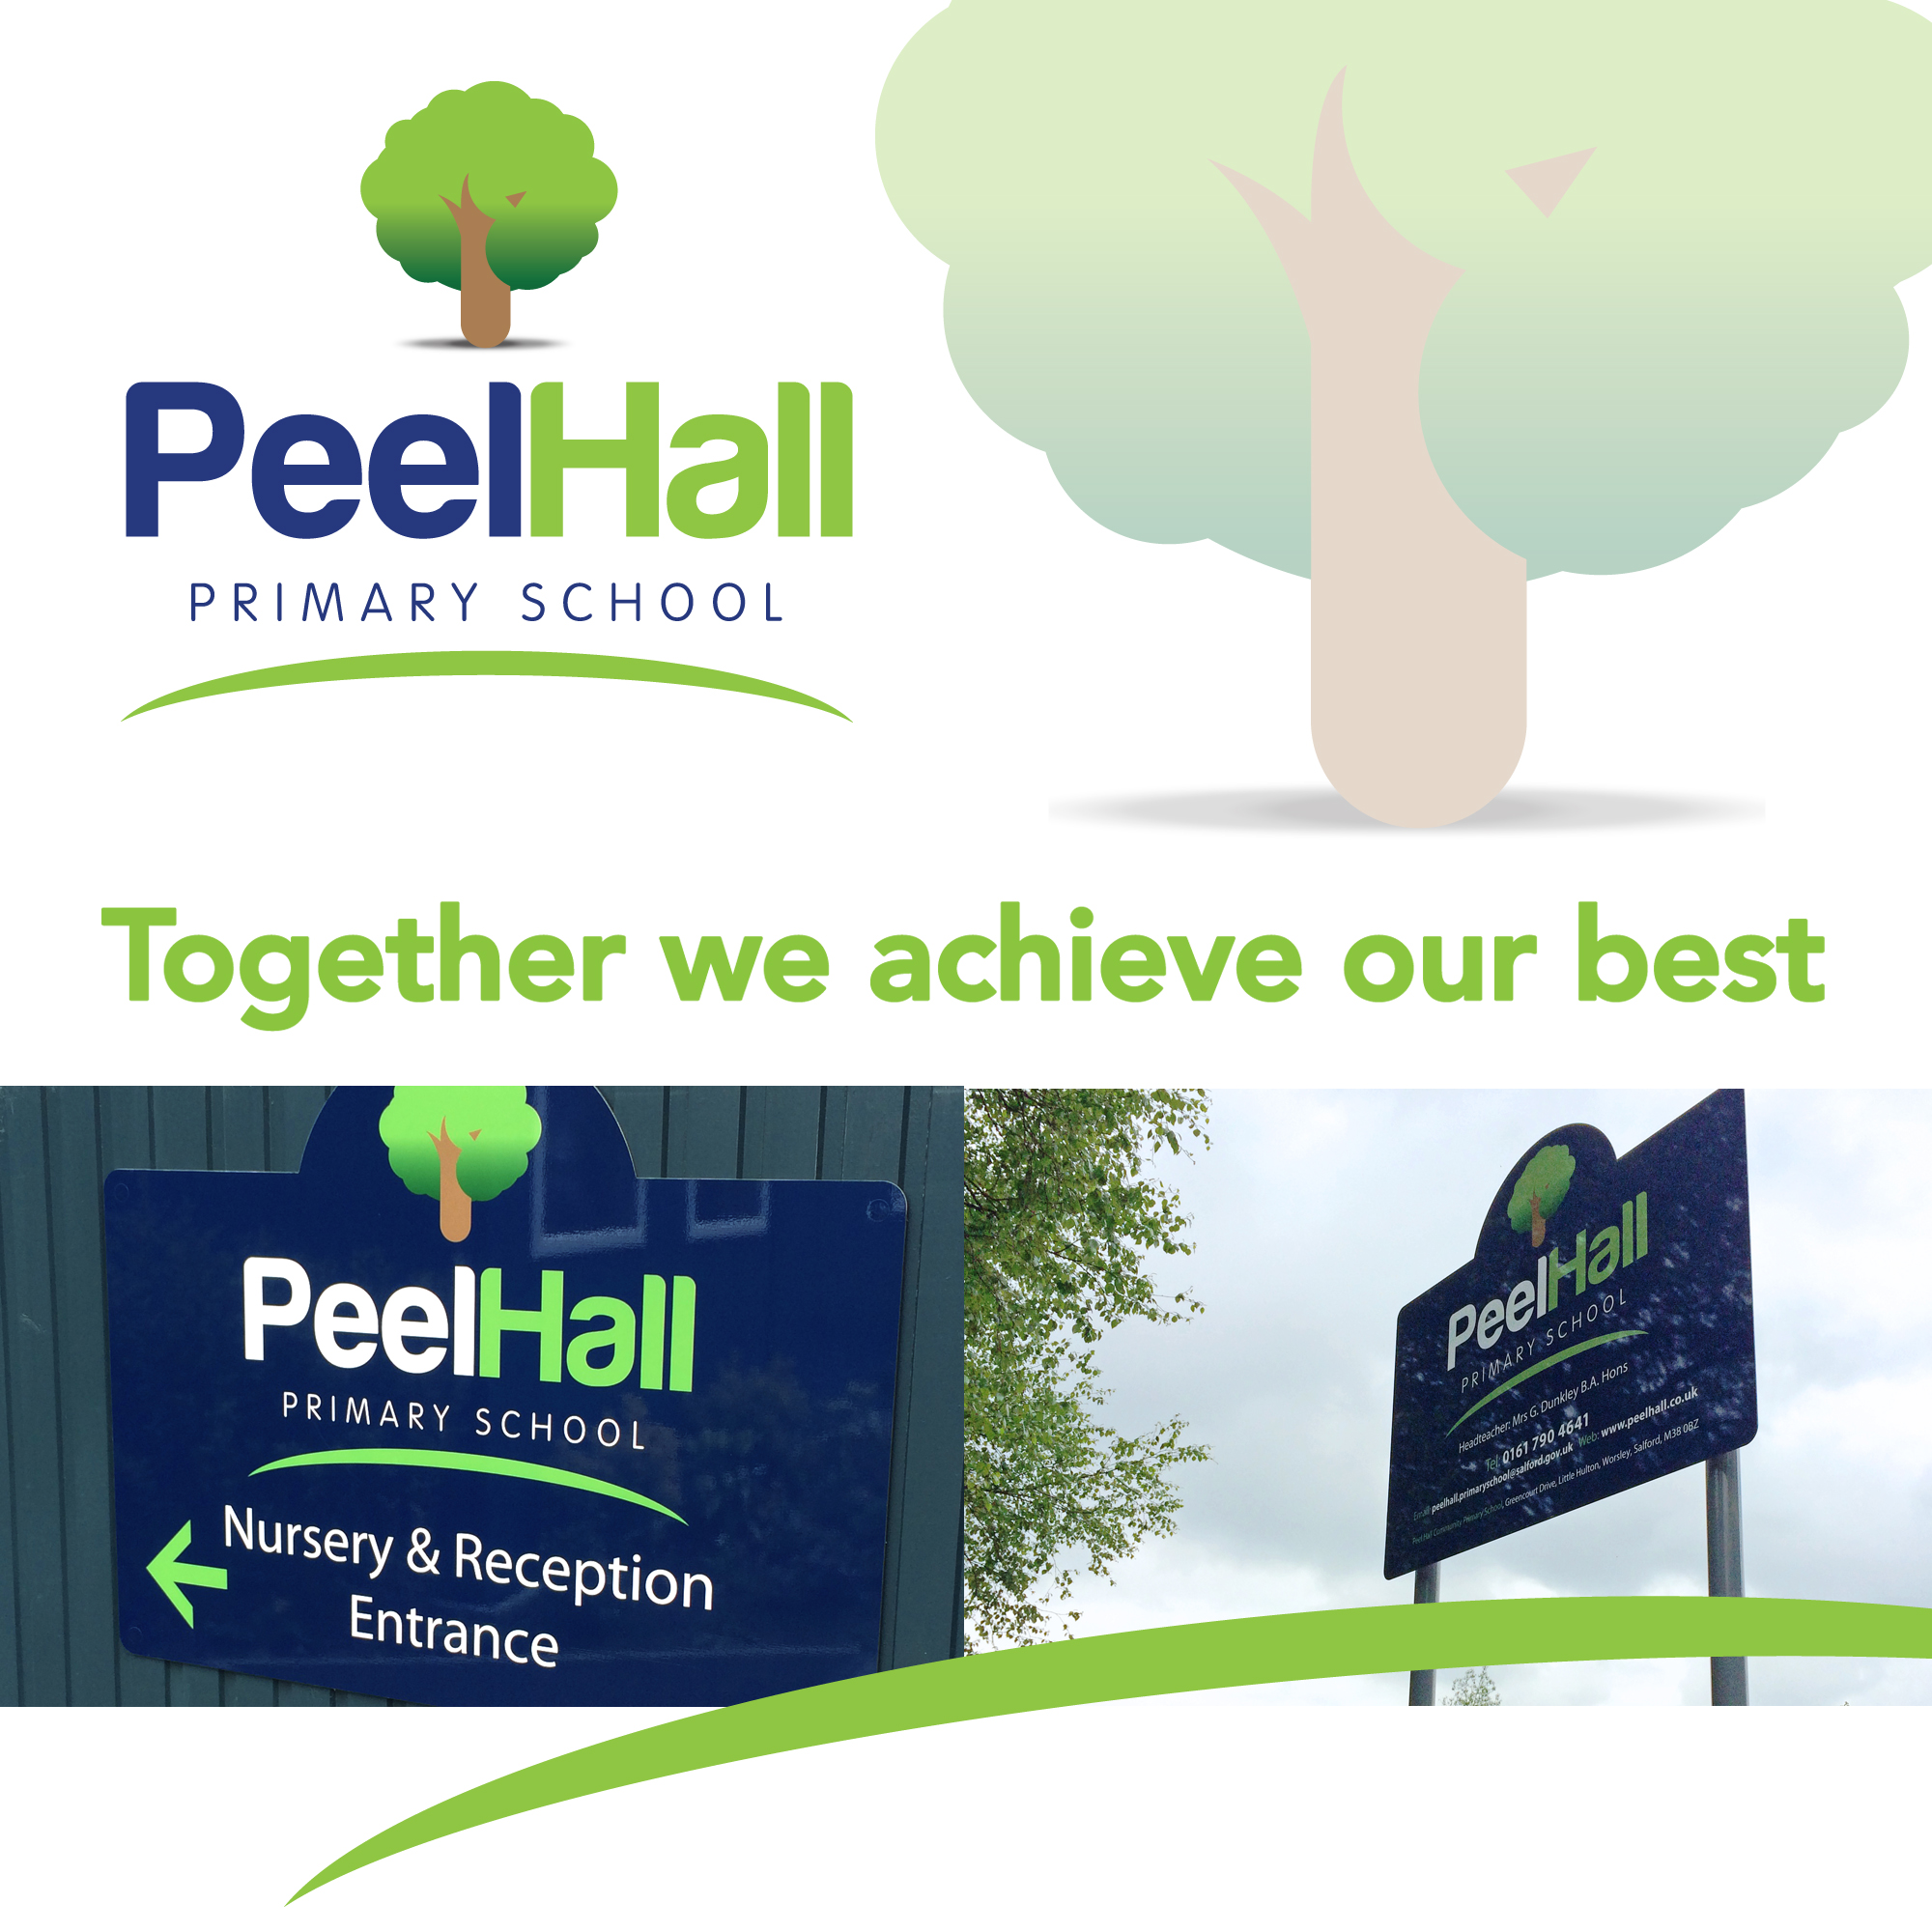 primary School Branding for peel hall logos and signs